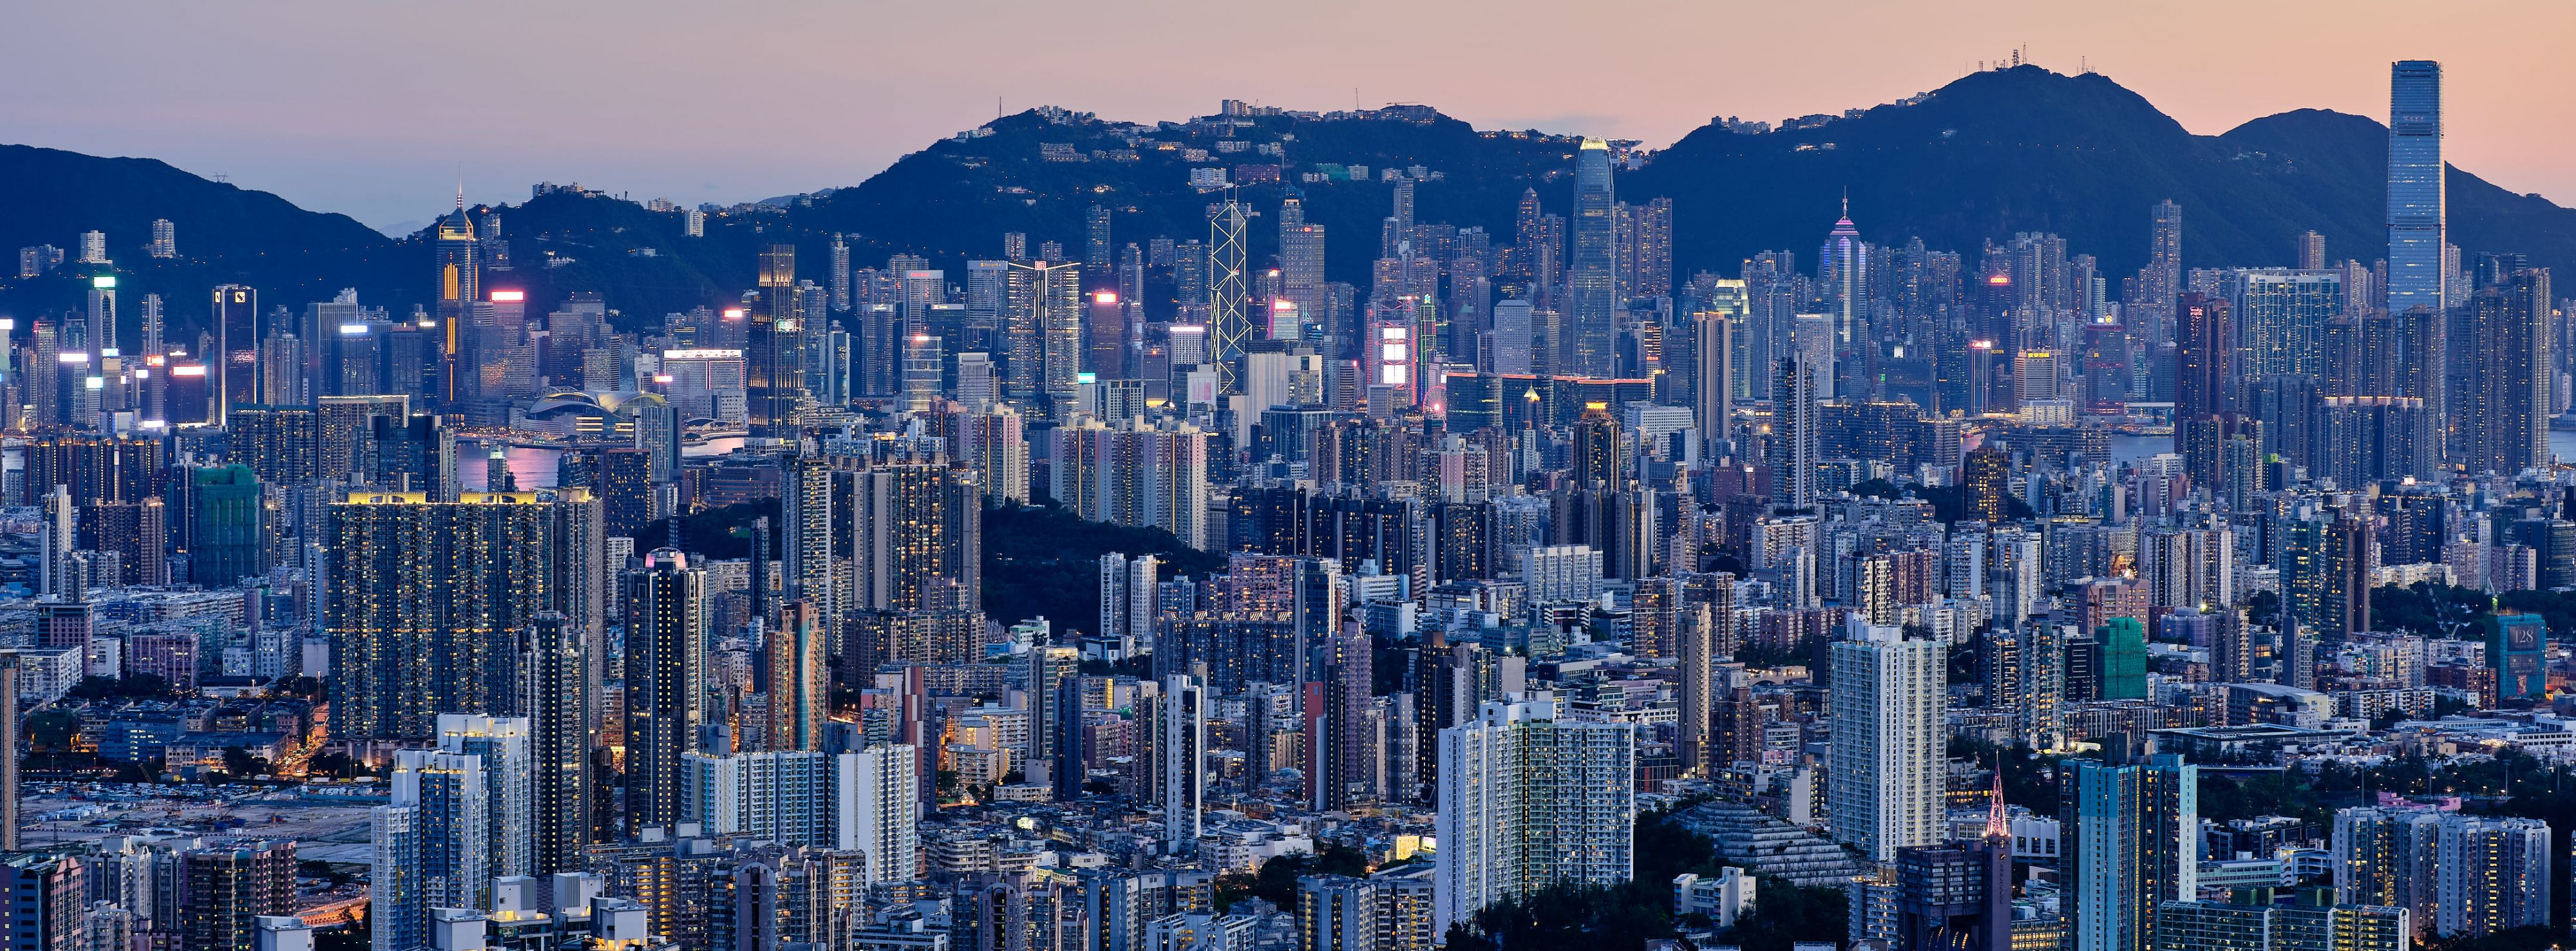 XPan Hong Kong blue hour skyline